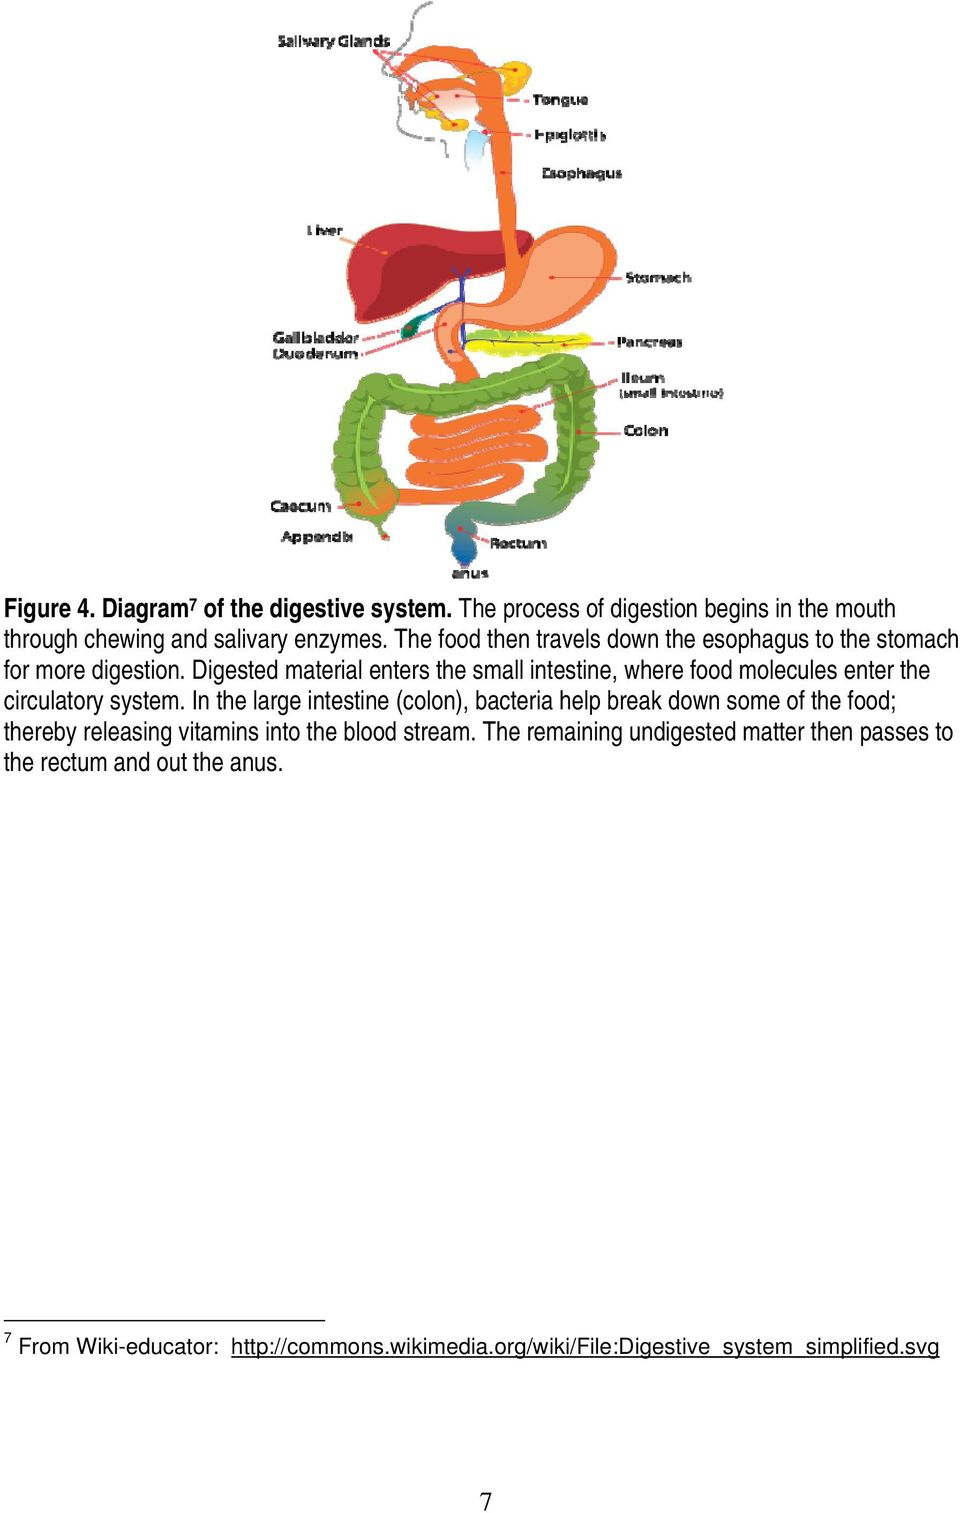 Digested material enters the small intestine, where food molecules enter the circulatory system.